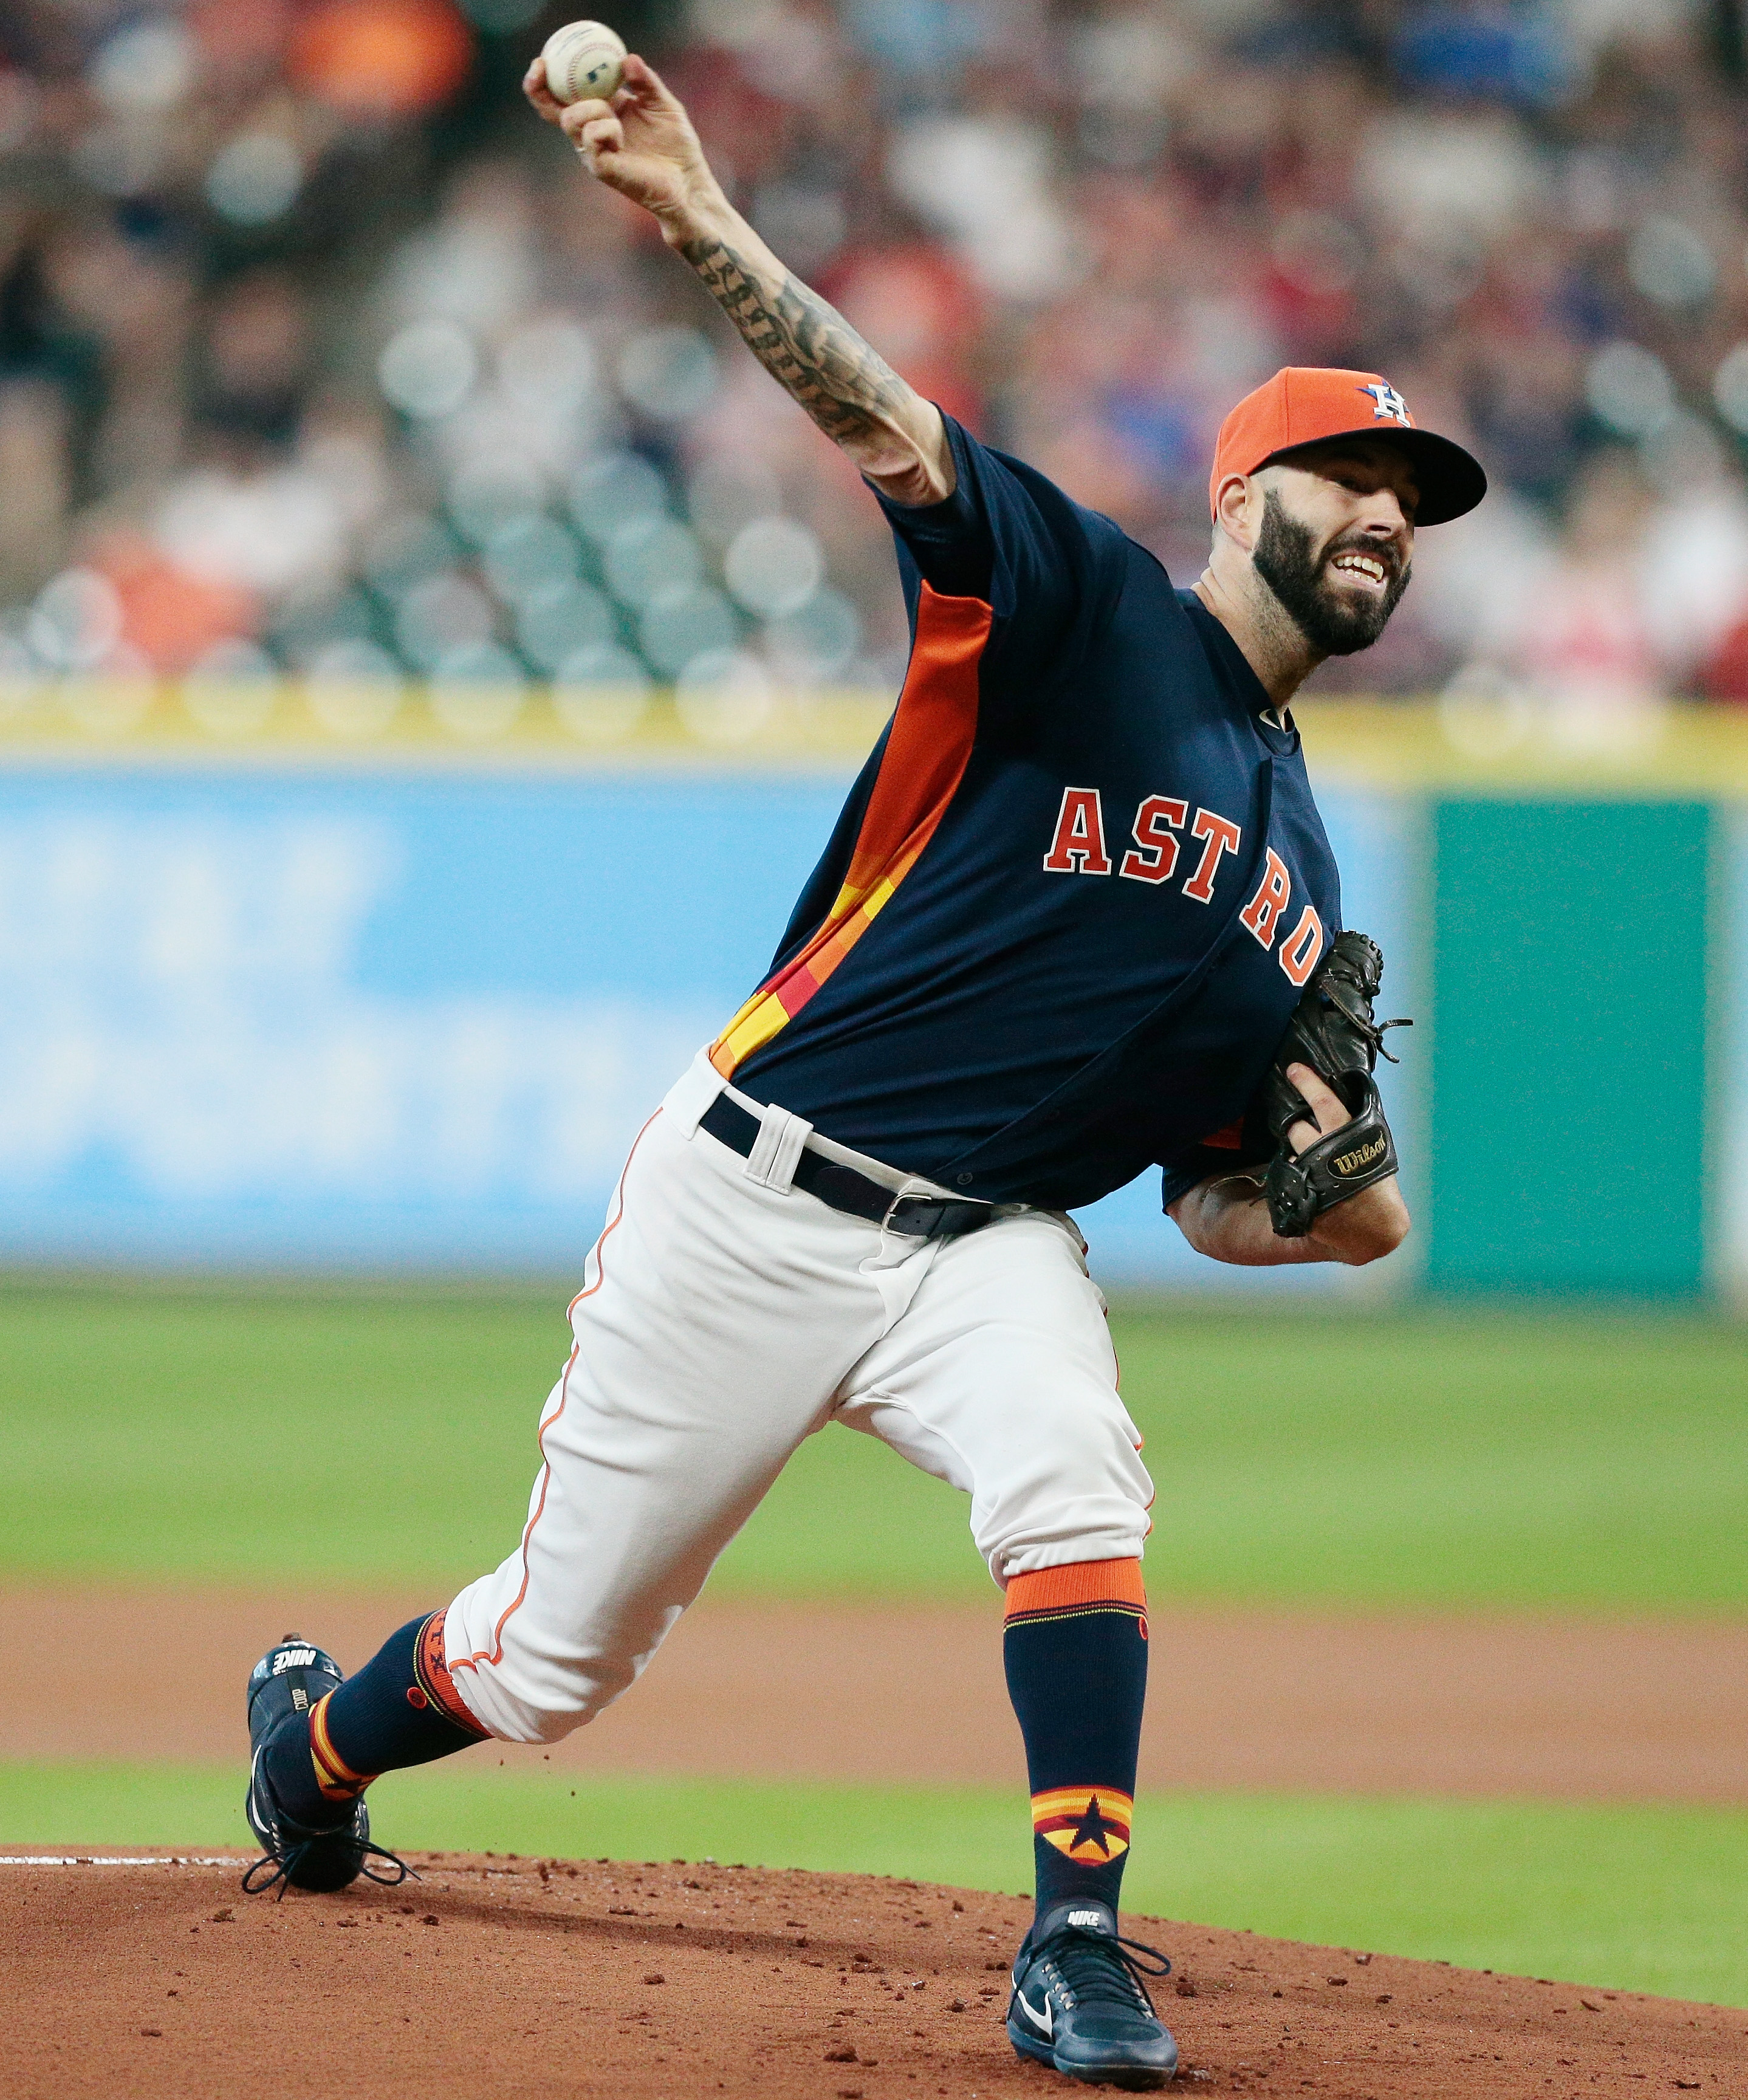 Mike Fiers Astros Trade: Trade Retrospective Special: Red Sox Send Jeff Bagwell To